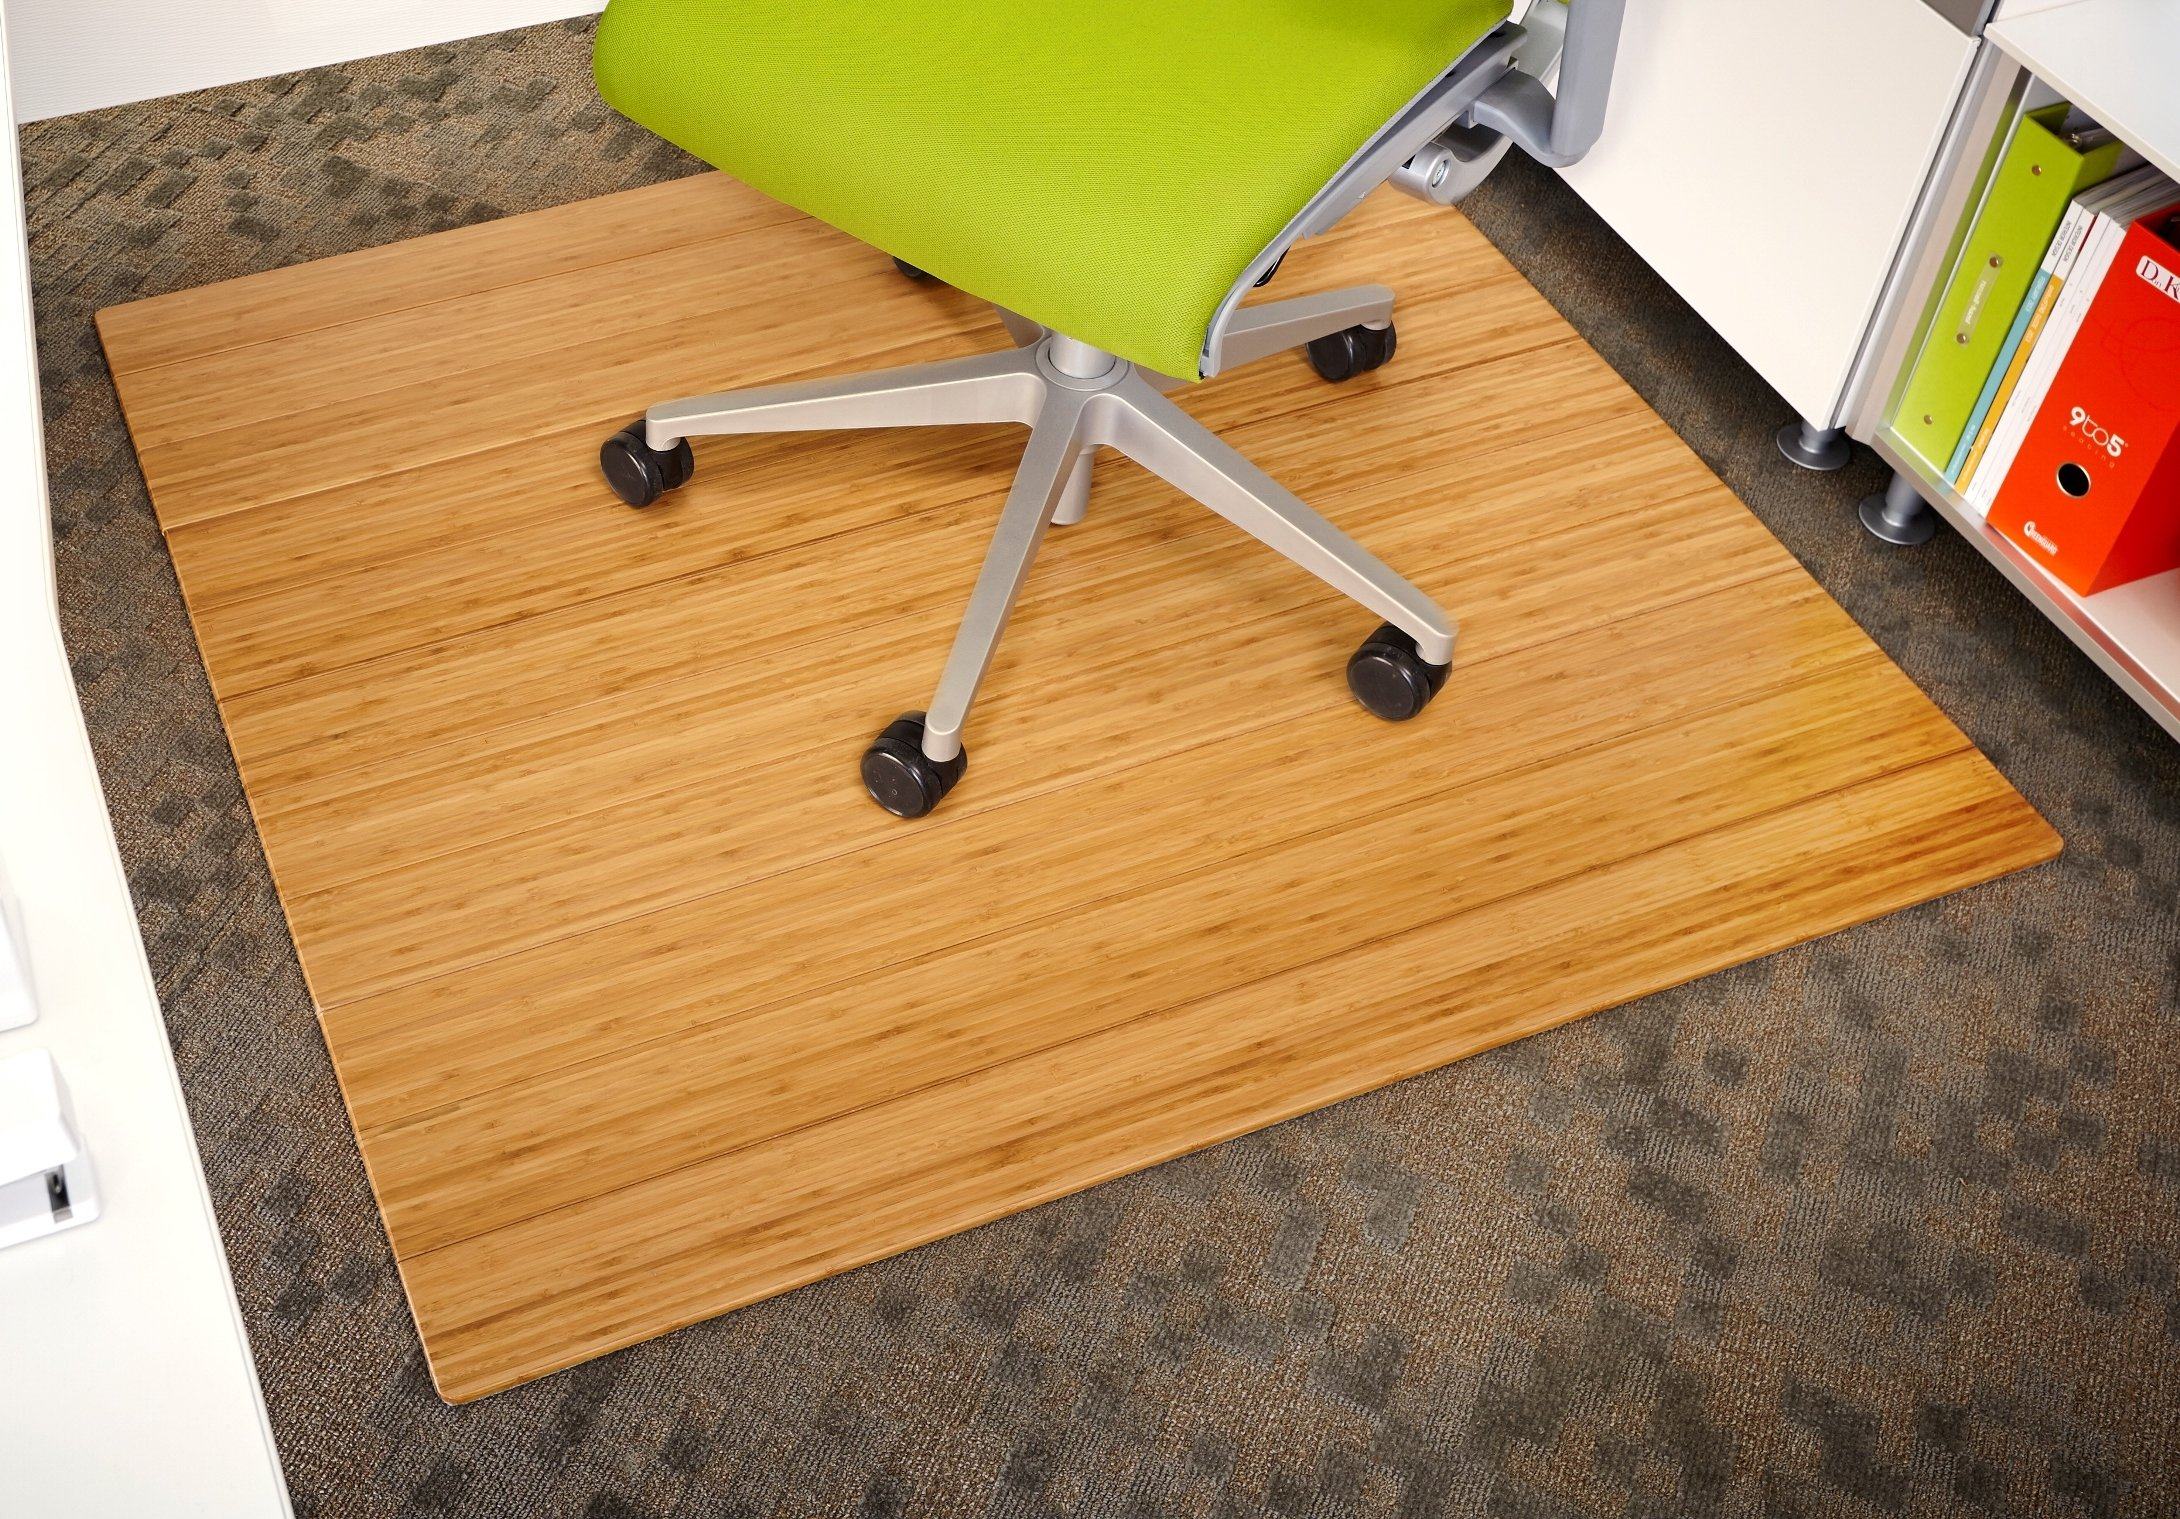 Anji Mountain AMB24034 Roll-up Wooden Chairmat, 42'' x 48'', Natural